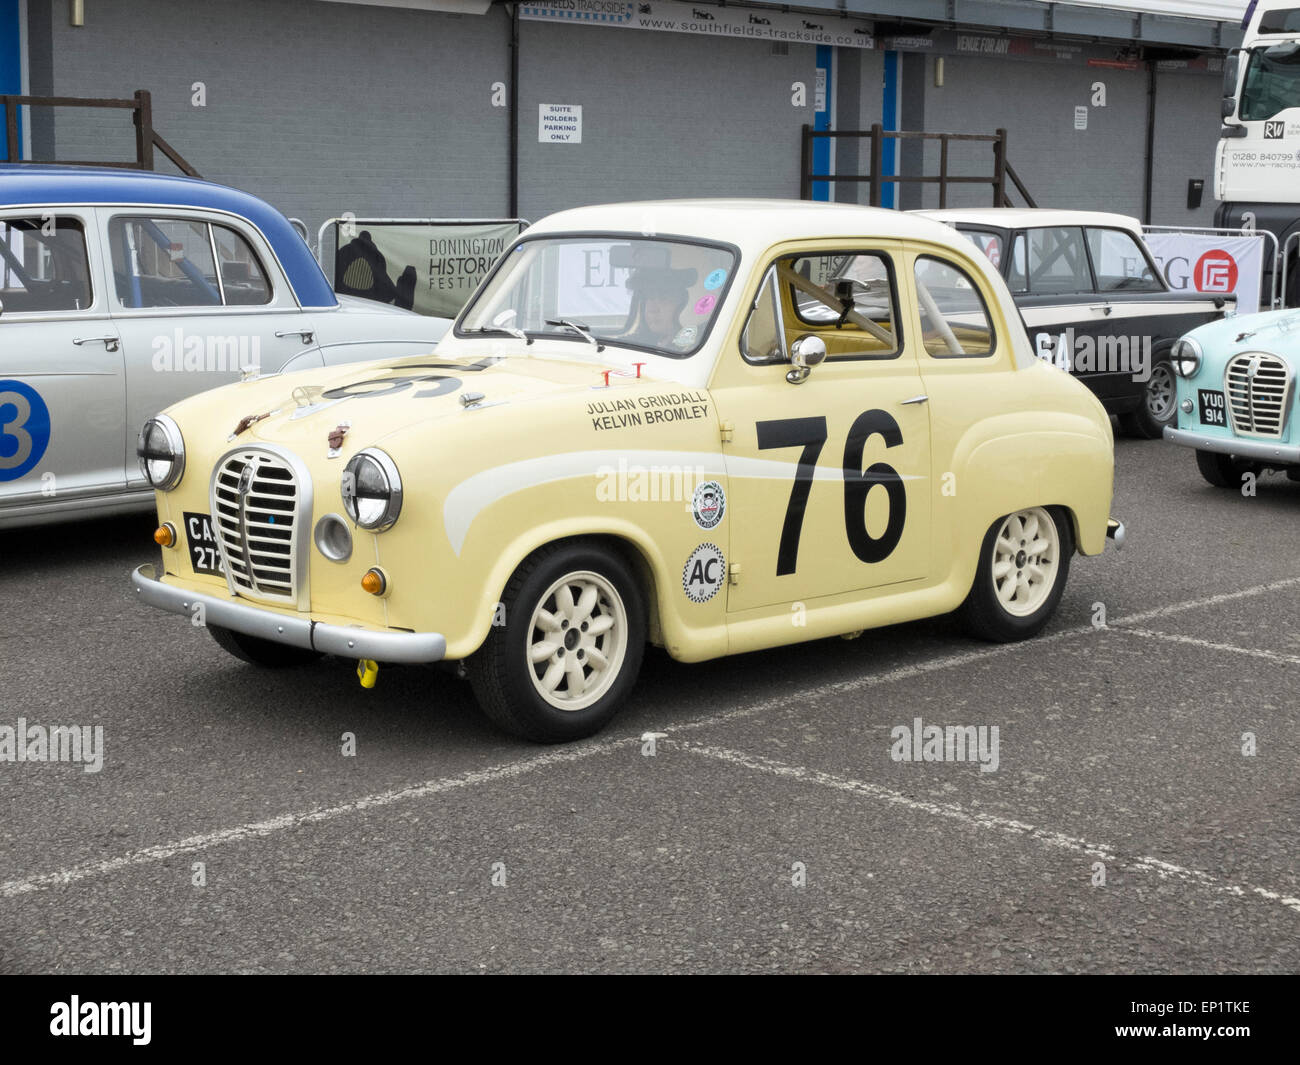 Julian Grindall and Kelvin Bromley taking part in the HRDC pre 1960 Touring Greats Races in their A35 at Donnington - Stock Image